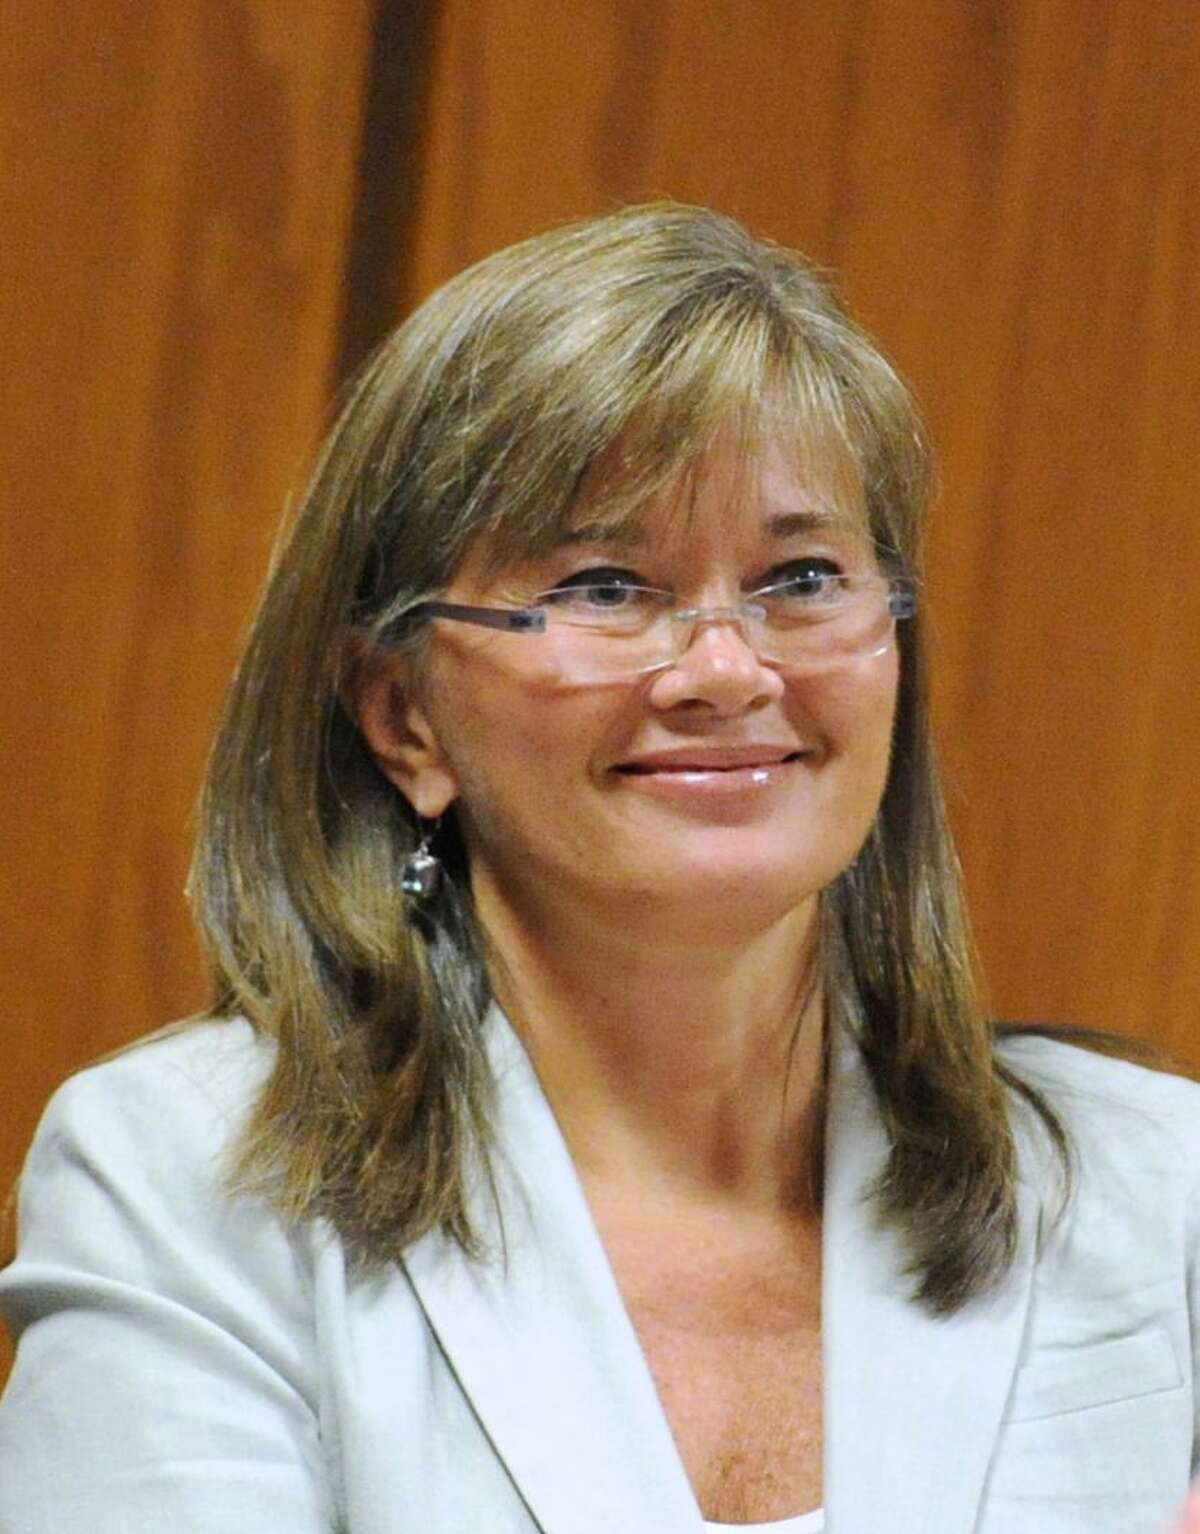 Kim Eves, director of communications for the Greenwich Public Schools, during the Greenwich Board of Education meeting at Greenwich Town Hall, Thursday night, Aug. 30, 2012.